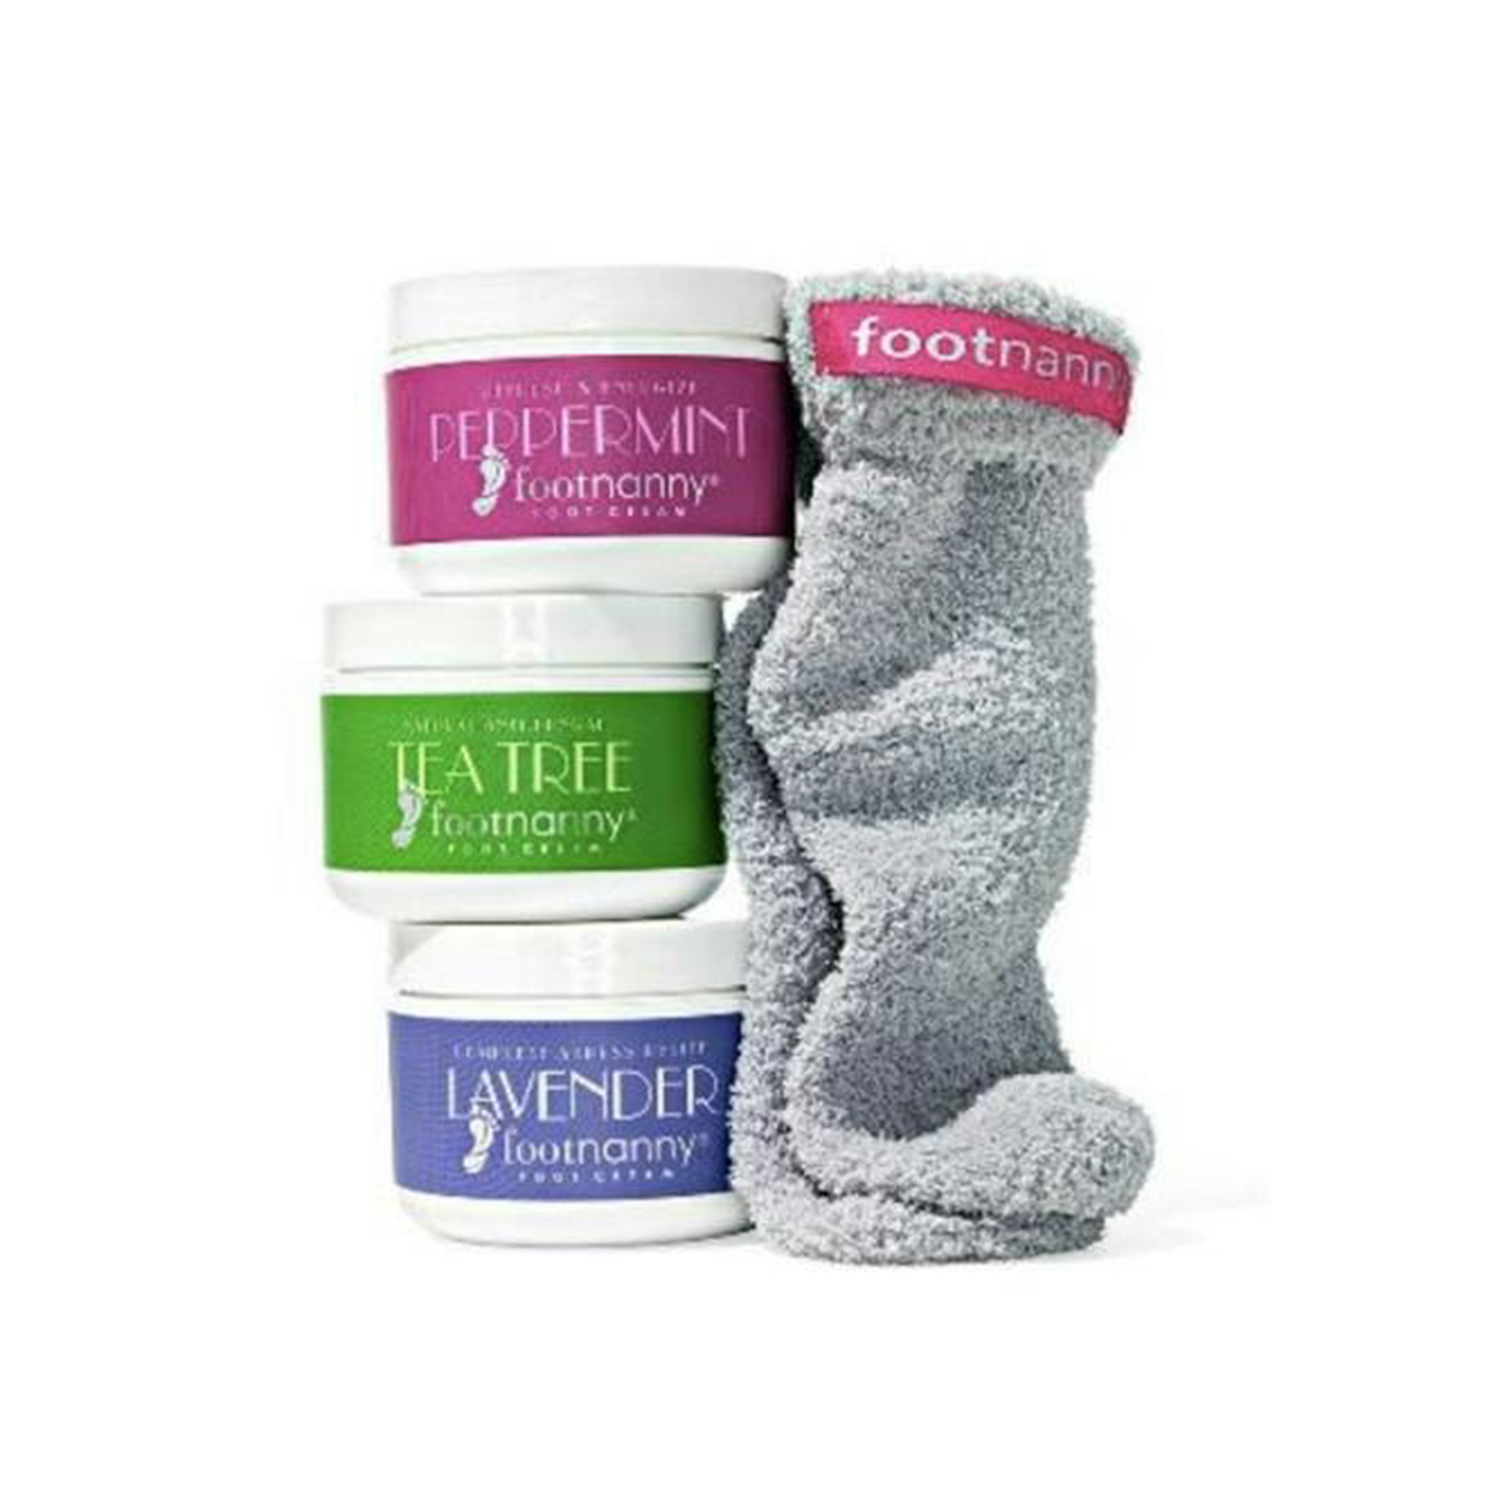 Footnanny Oprah Magazine Foot Cream